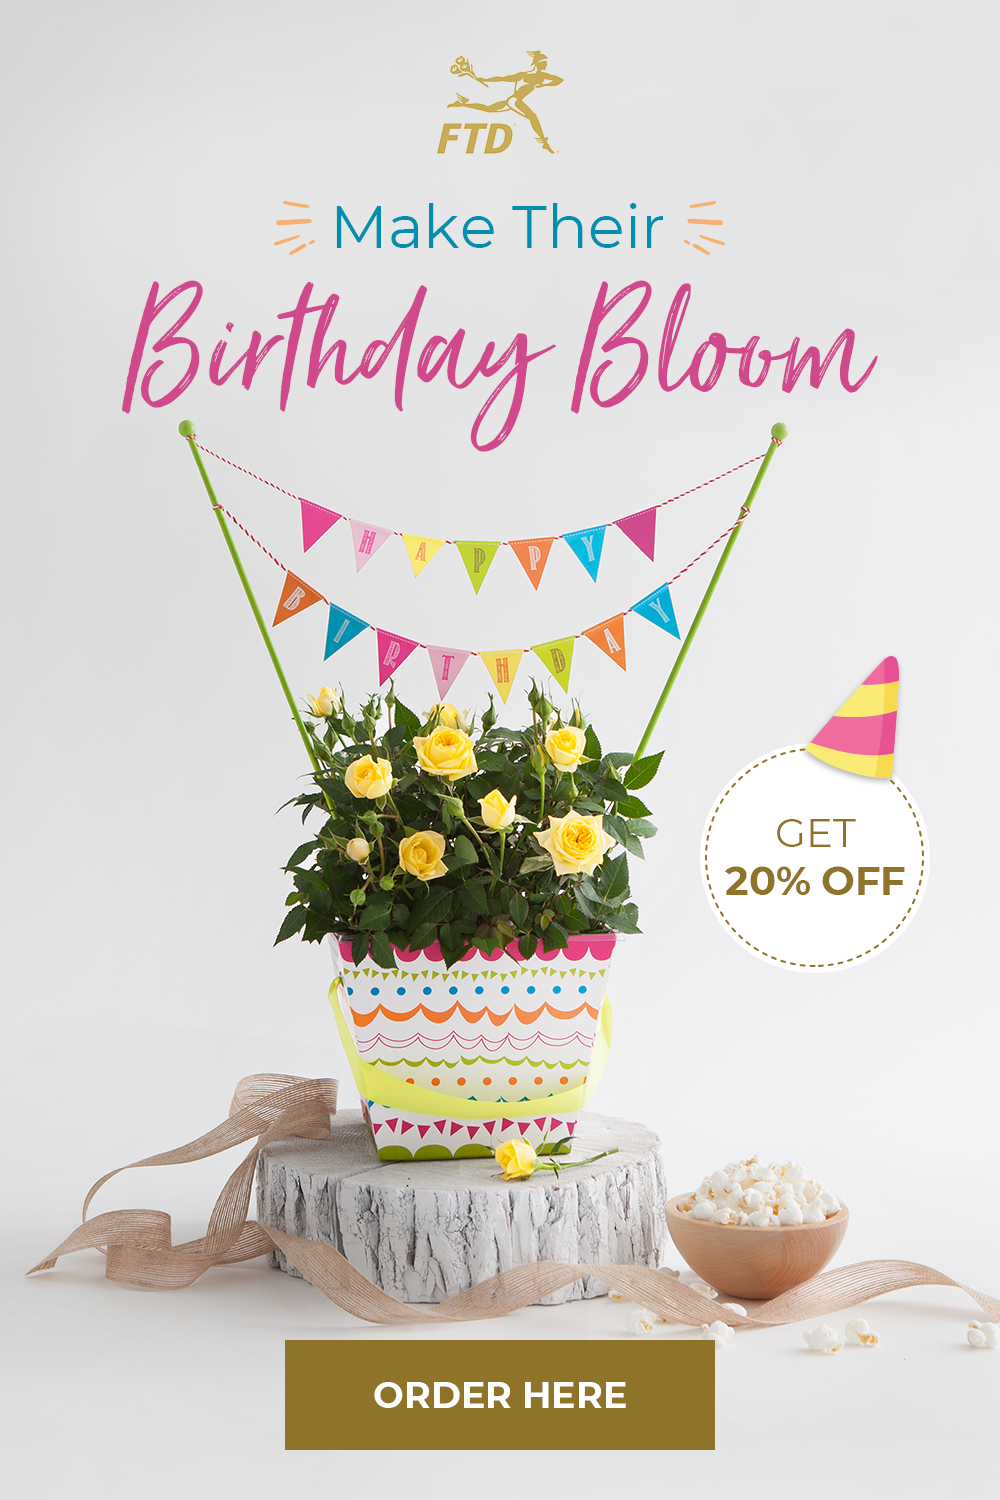 Brighten their birthday with the boldest and most exciting